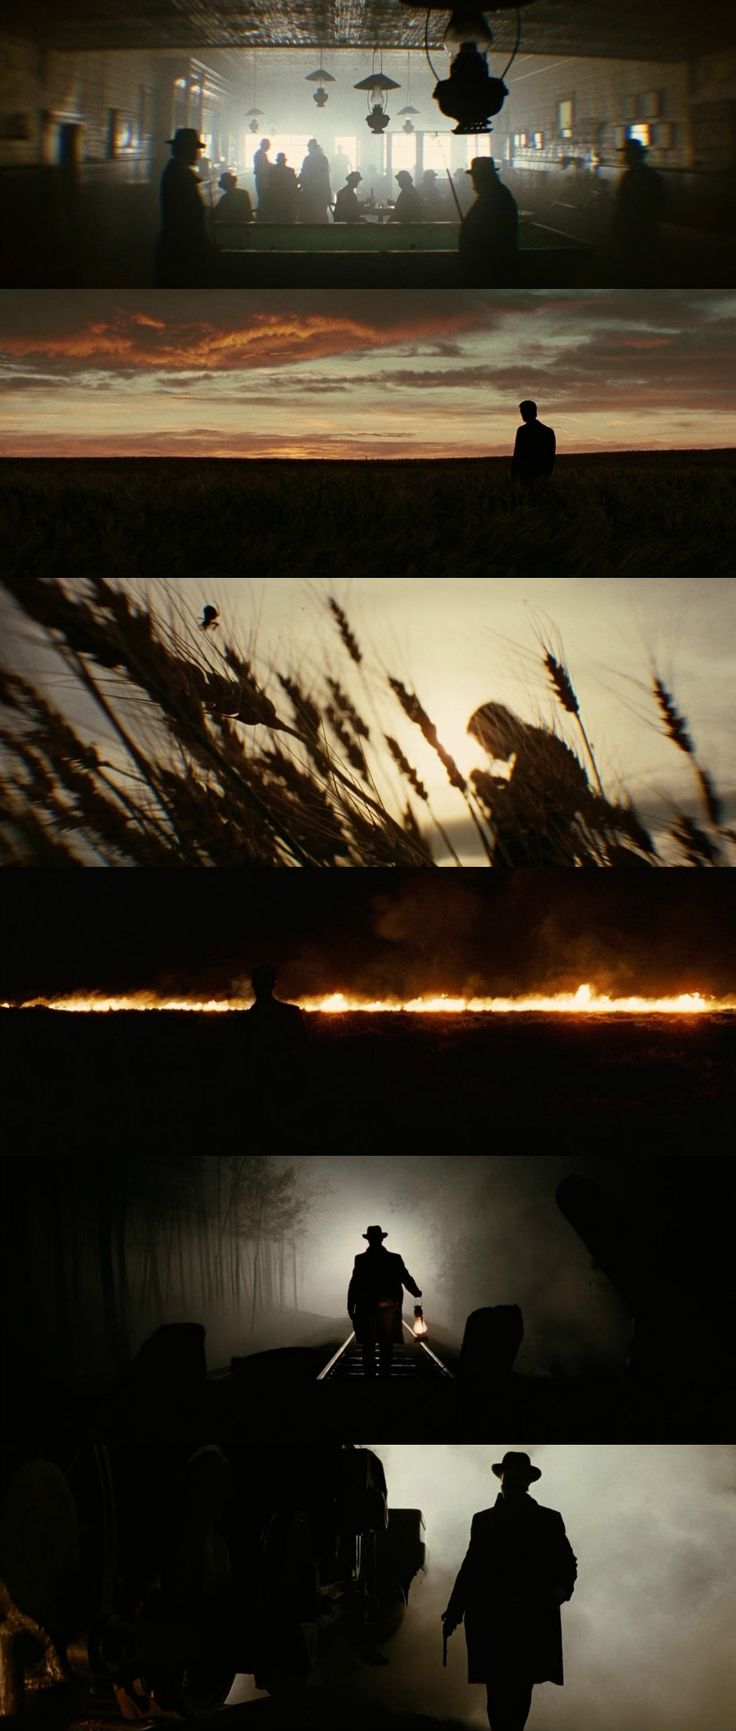 The Assassination of Jesse James by the Coward Robert Ford (2007) Director: Andrew Dominik. Photography: Roger Deakins.